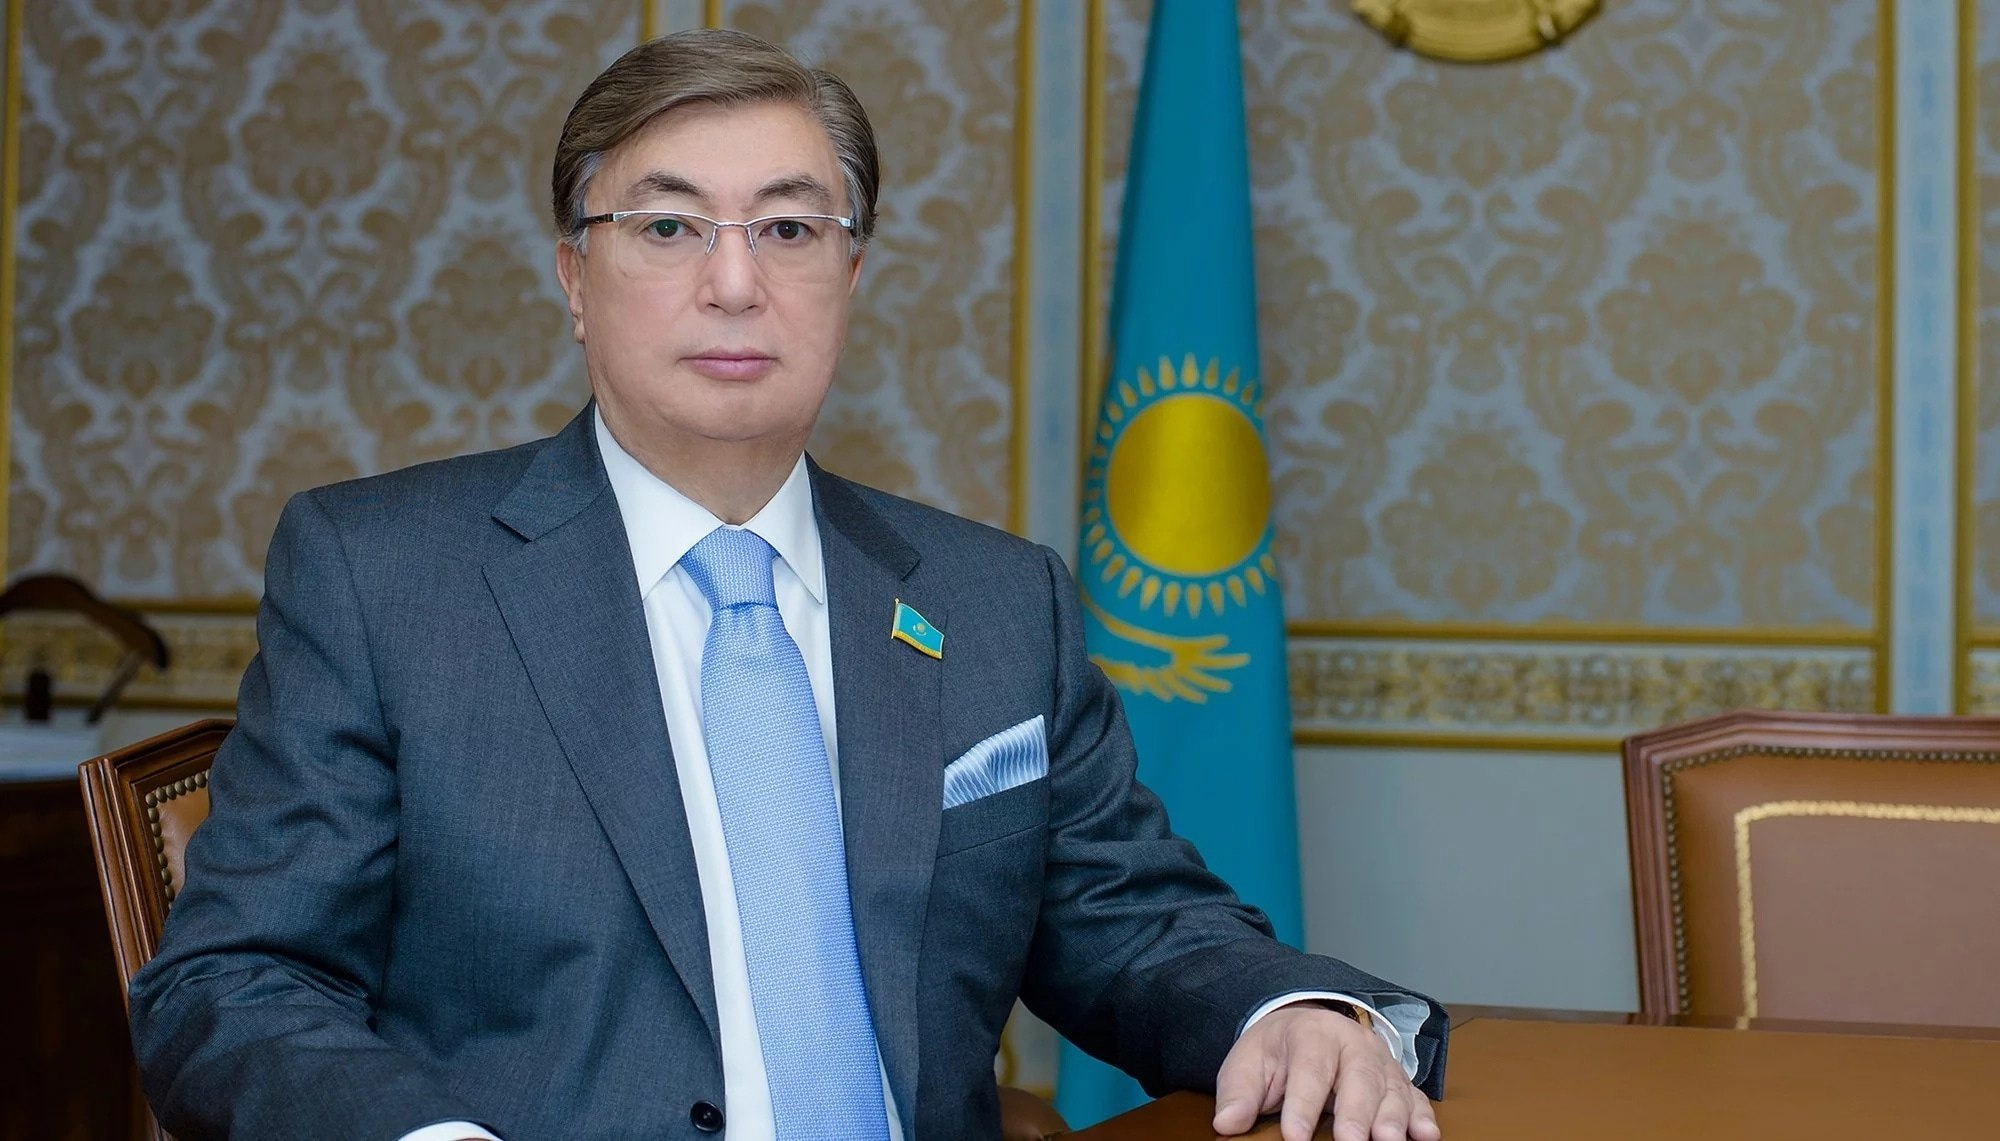 61323a807075e2ba81c7c29a266ceeb2 - Kassym-Jomart Tokayev congratulated the teachers